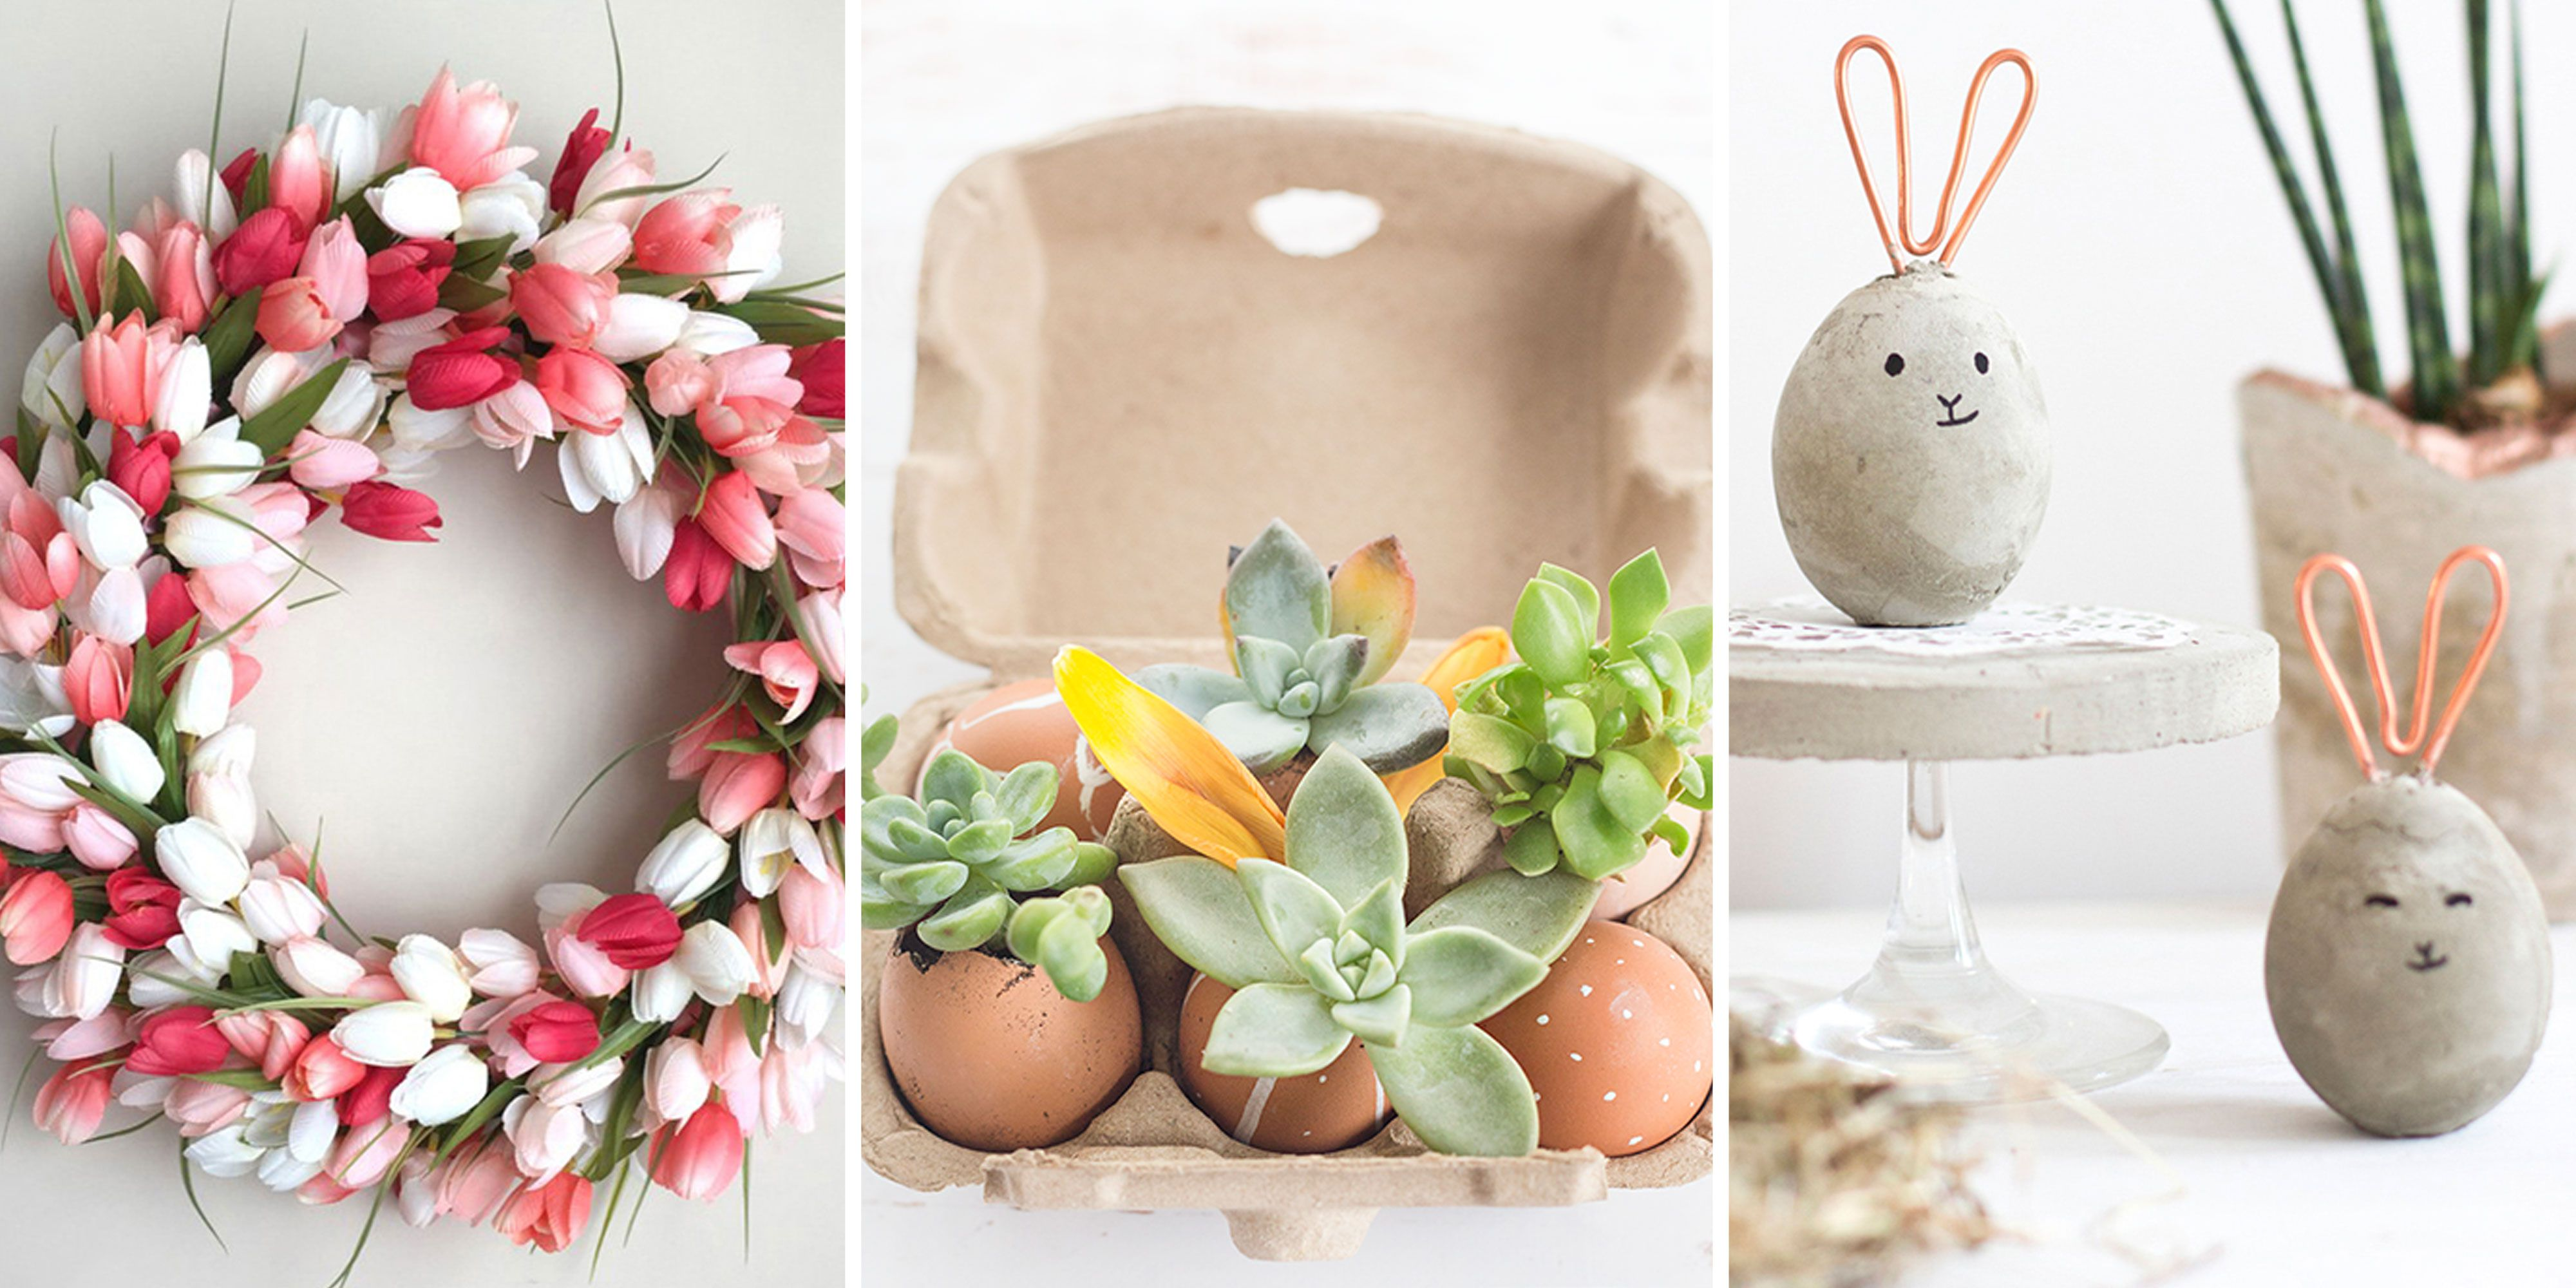 With simple Tricks to make your natural Easter decoration